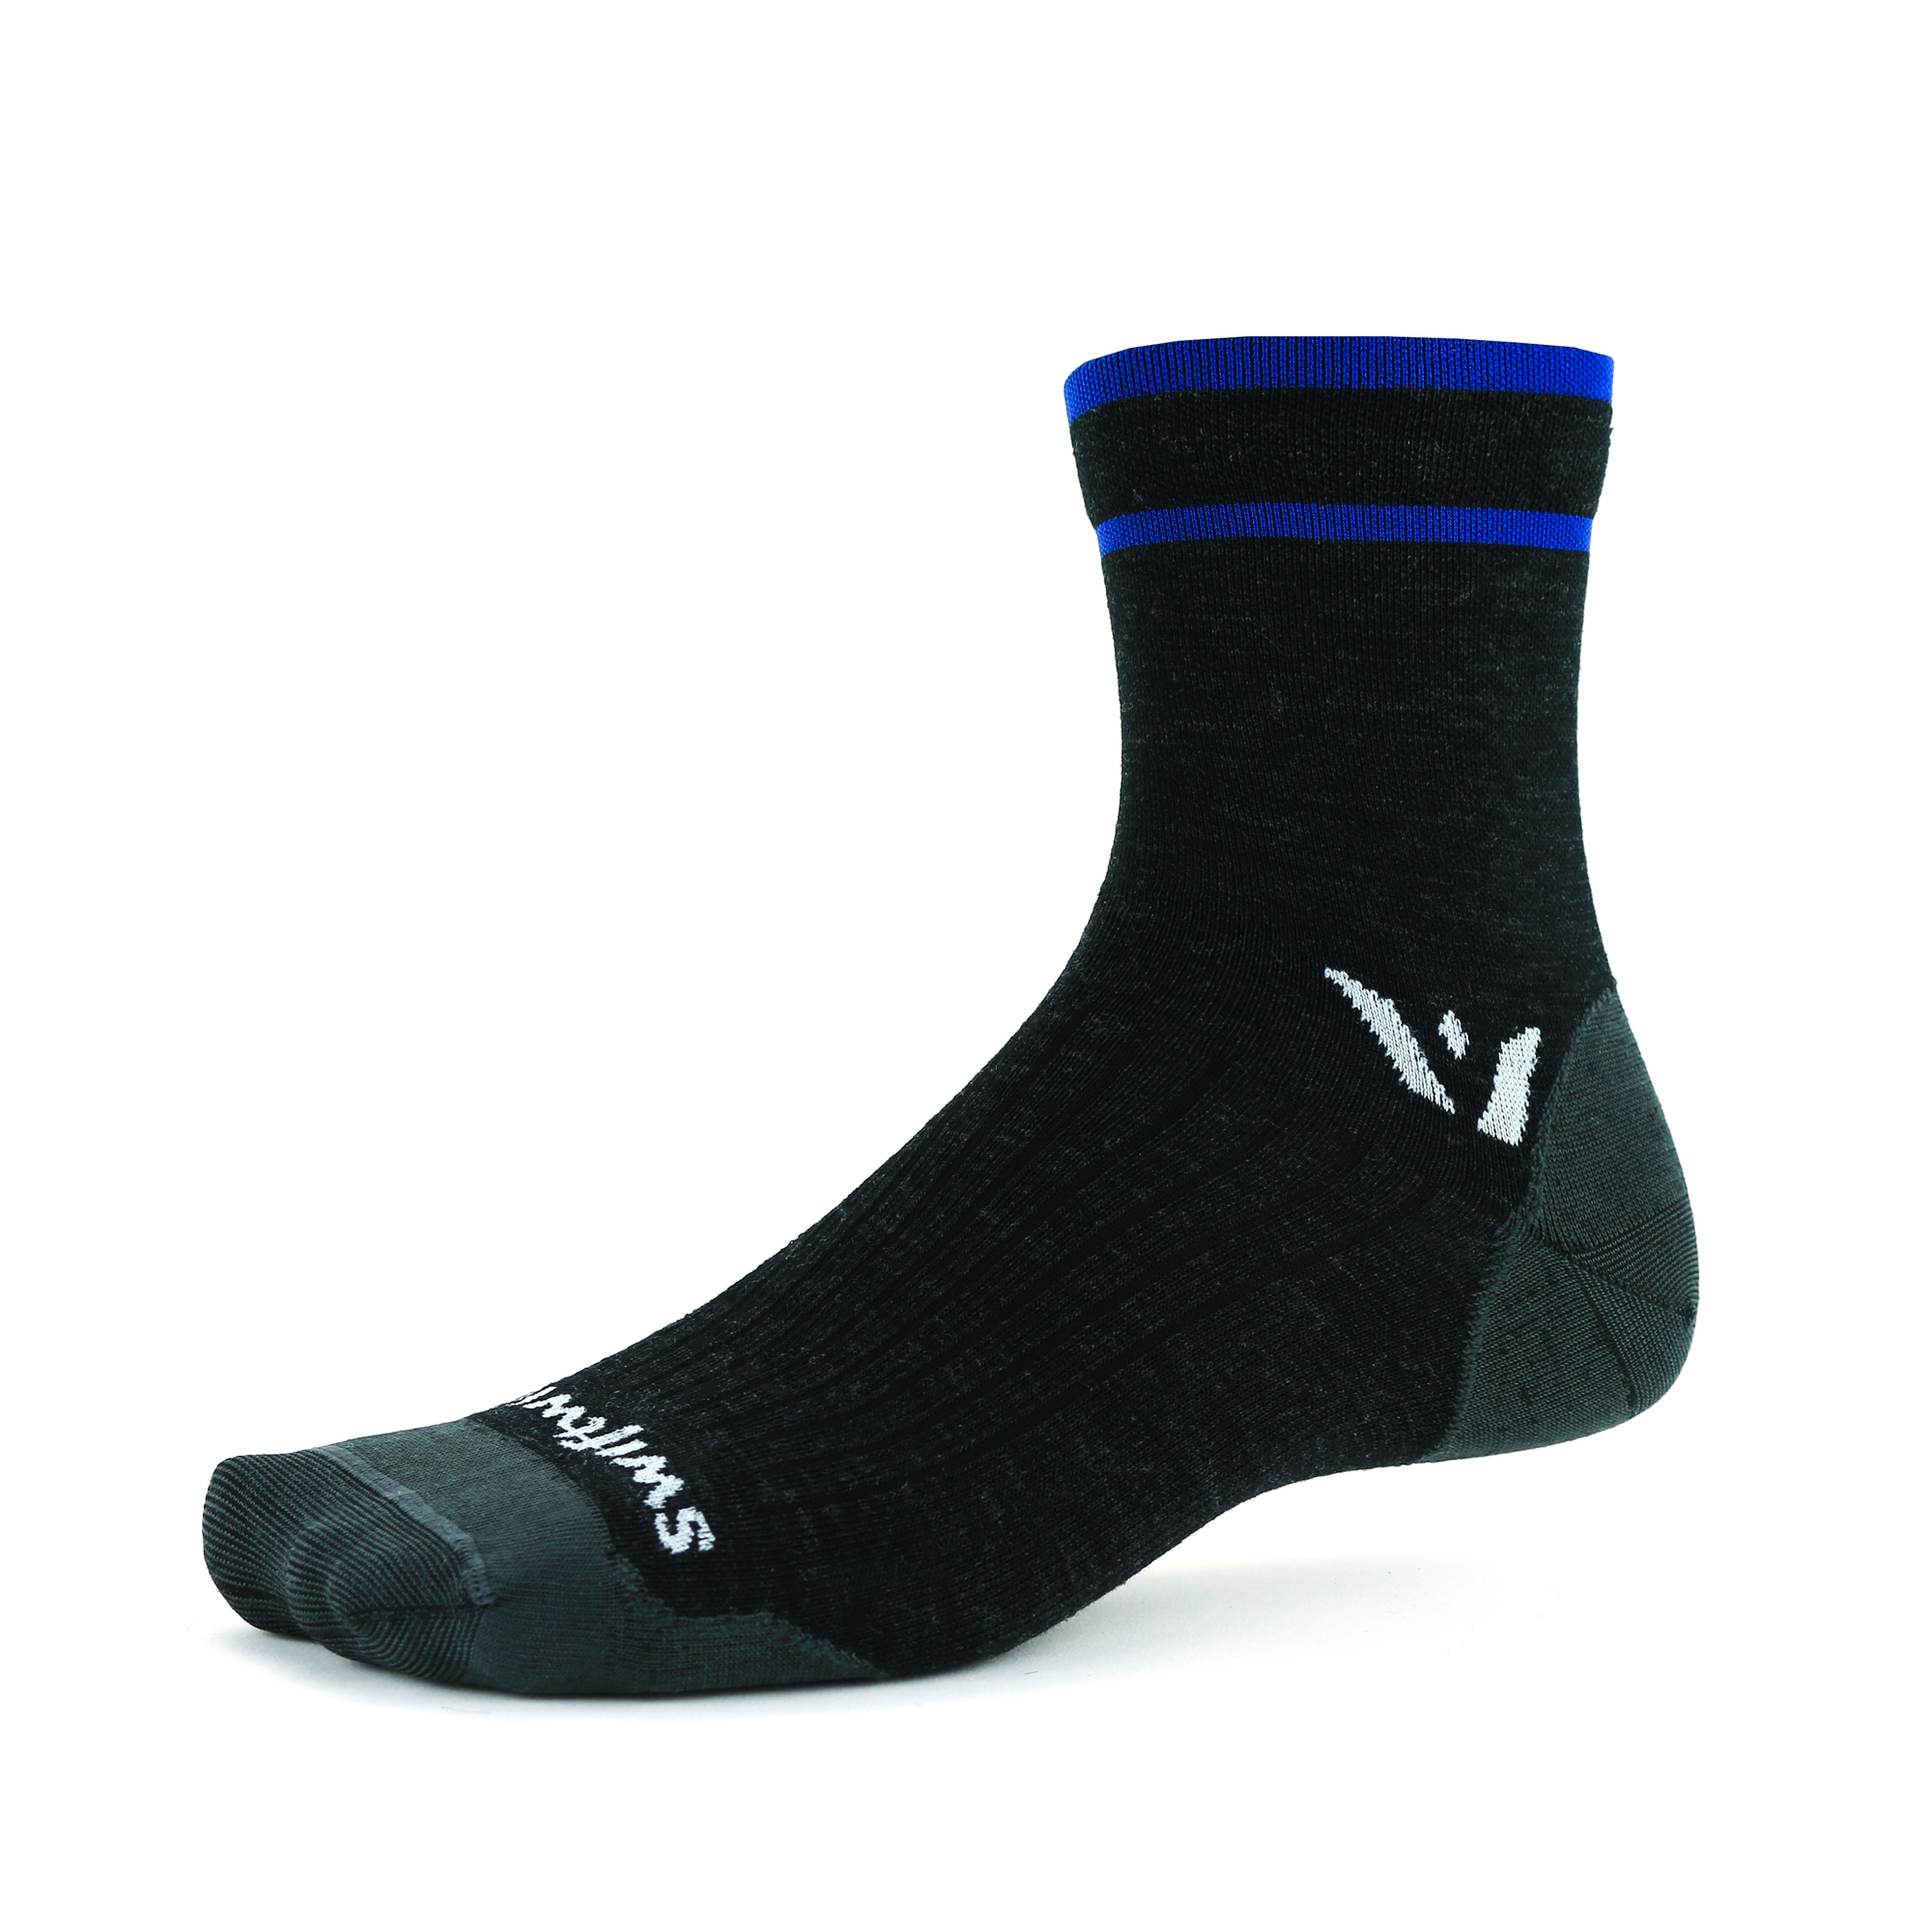 Swiftwick's Pursuit Ultralights